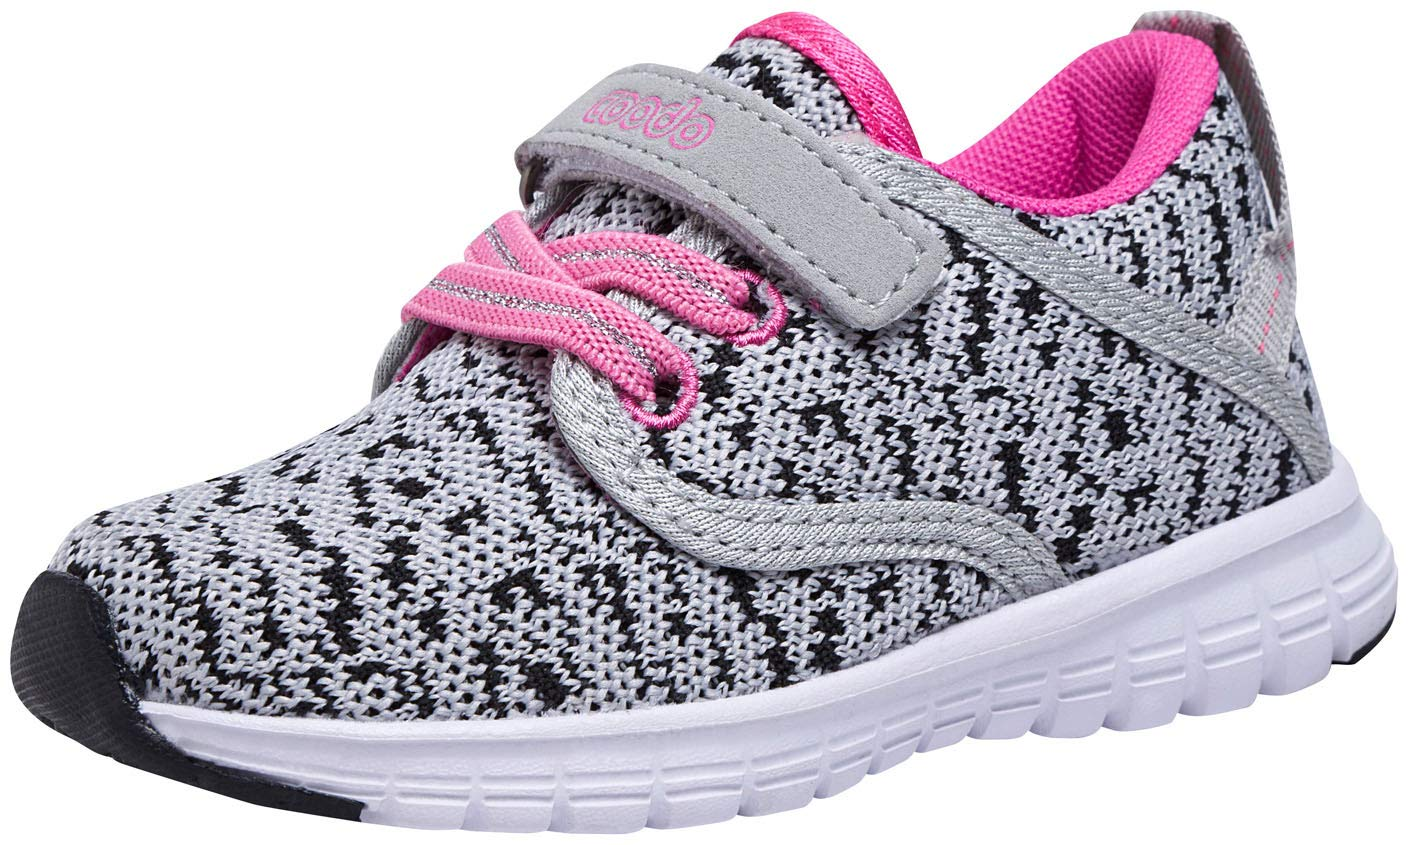 COODO CD3001 Toddler's Sneakers Girls Cute Casual Running Shoes Grey-7